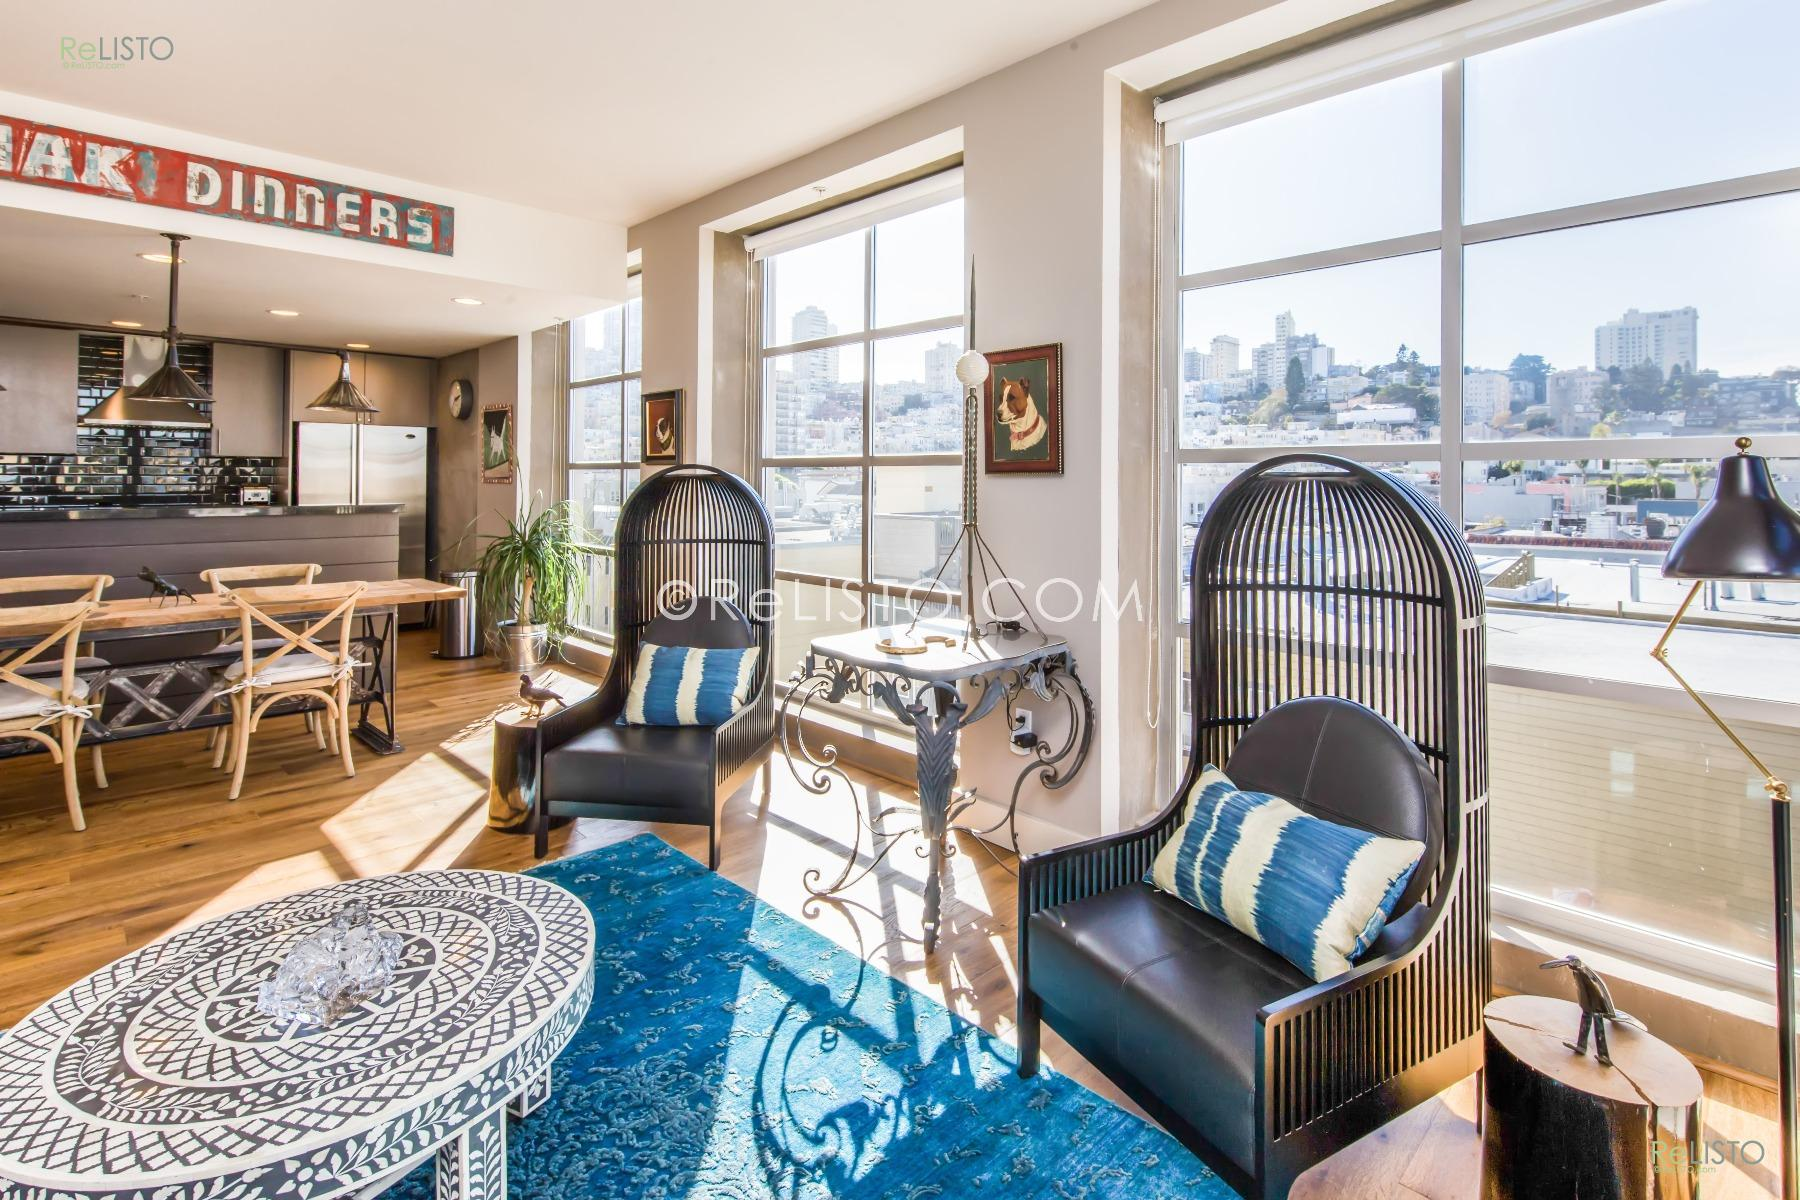 North Beach   2 Bed 2 Bath   Office   Laundry   Parking  